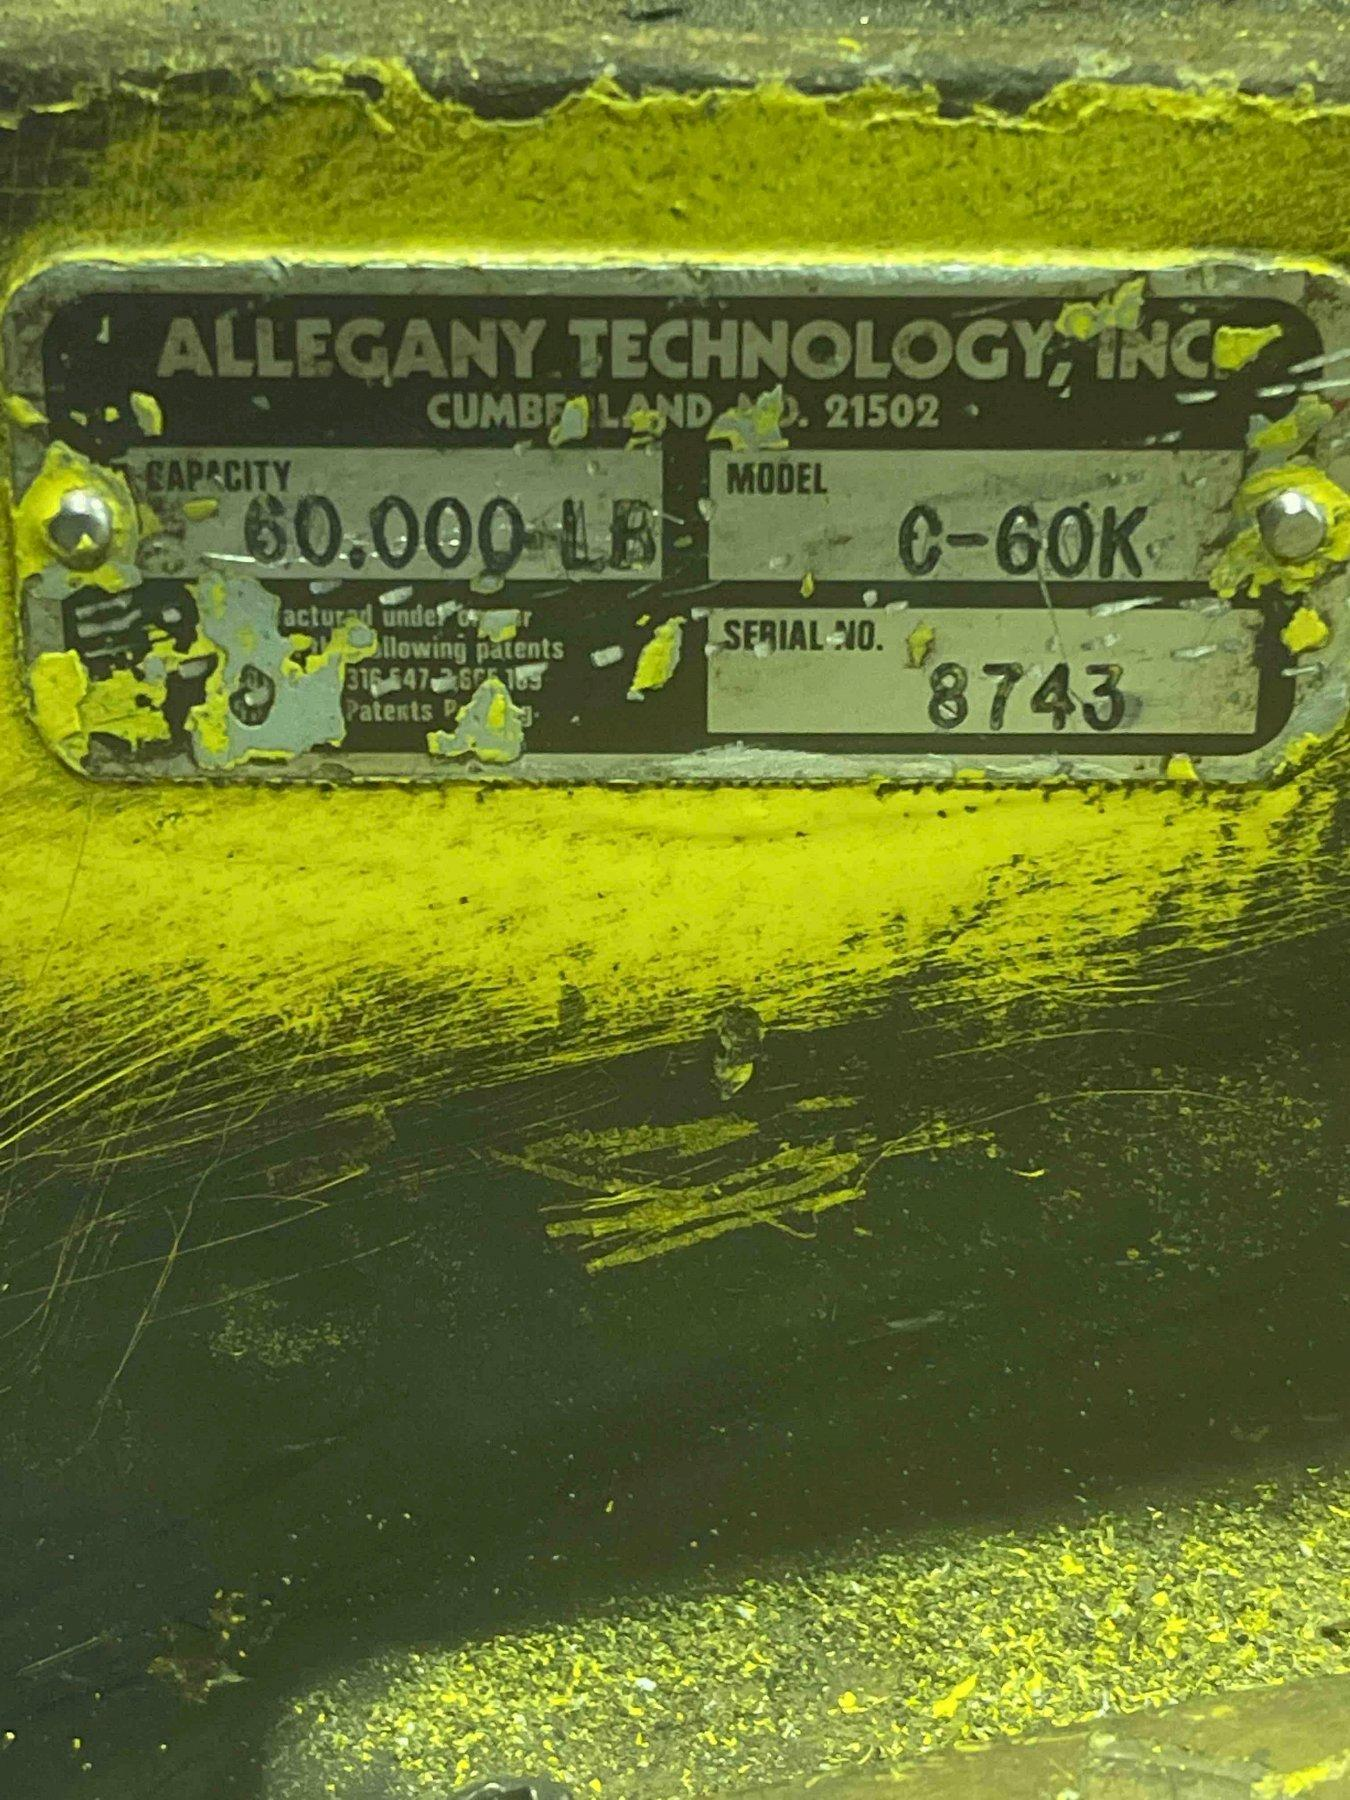 Allegany Technology 60,000 LB   Crane Scale Model C-60K S/N 8743 with remote control